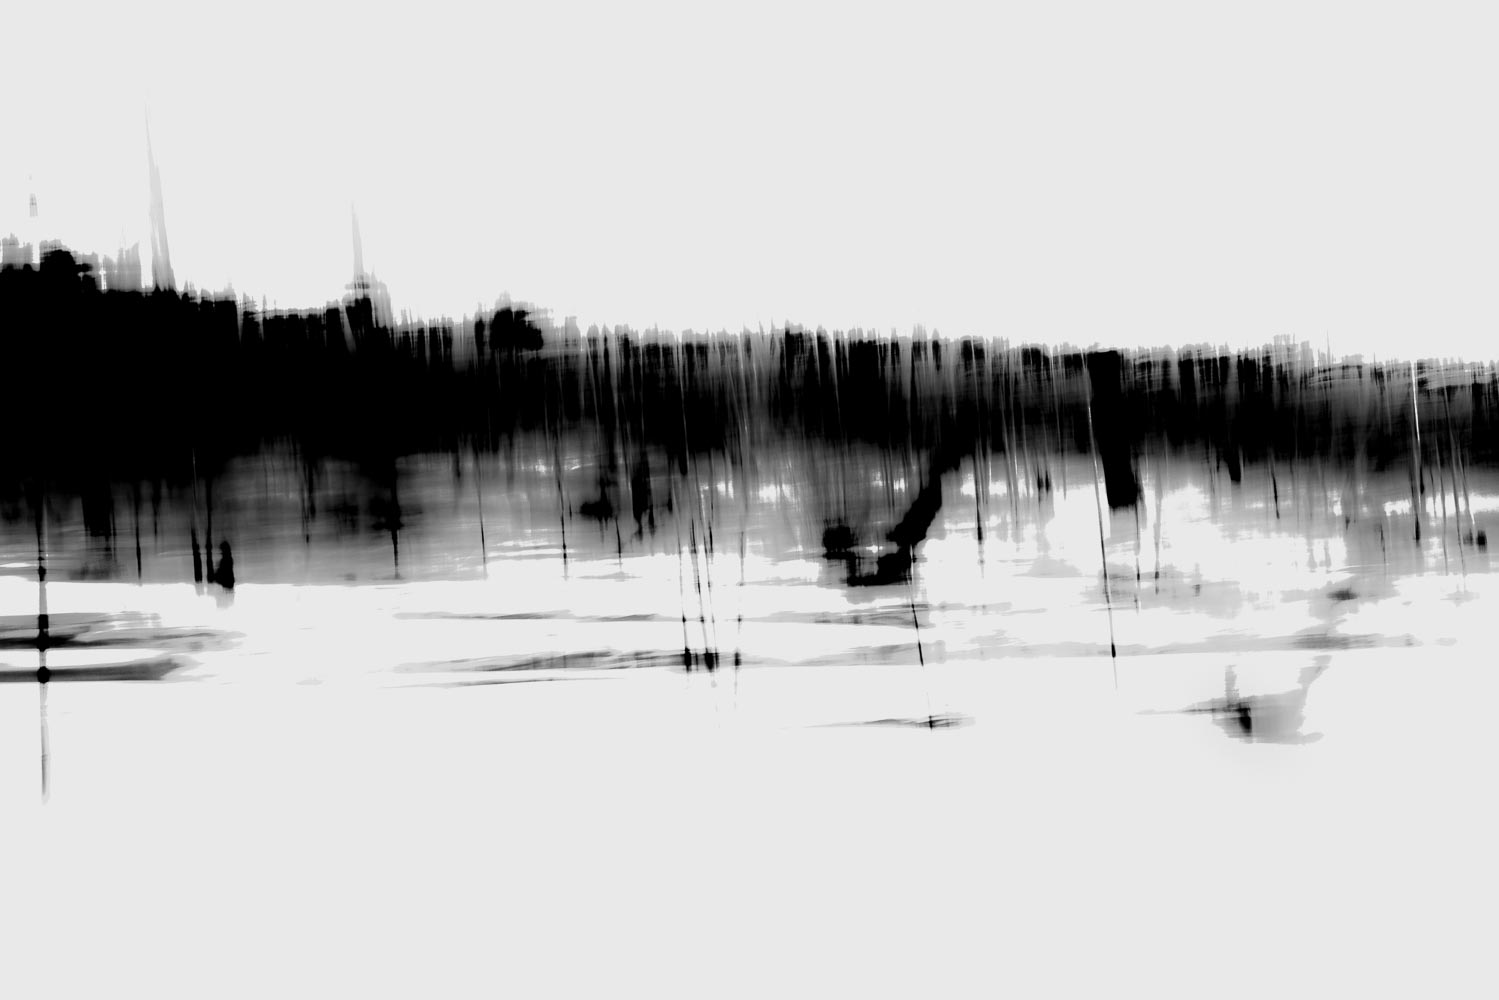 LANDSCHAP 2 - digital photography - dimensions variable - 2018